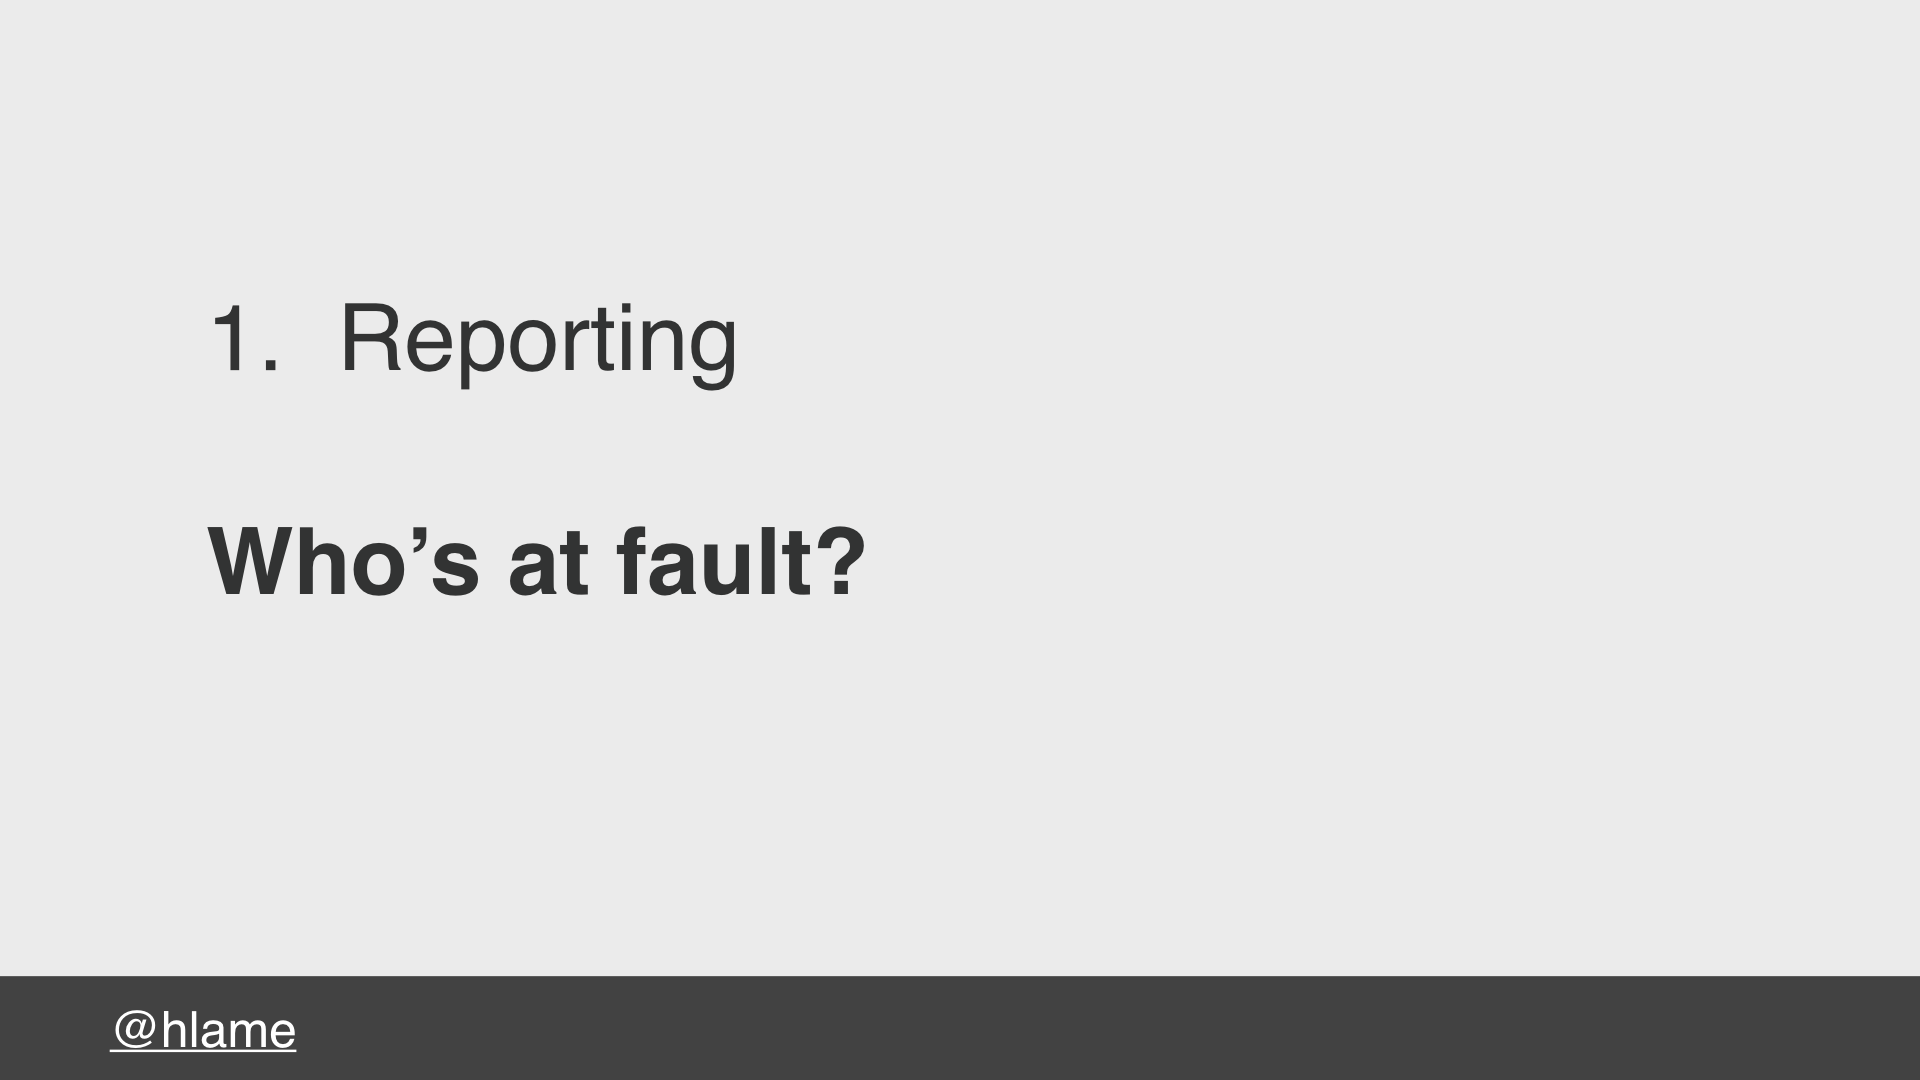 text: 1. Reporting, Who's at fault?